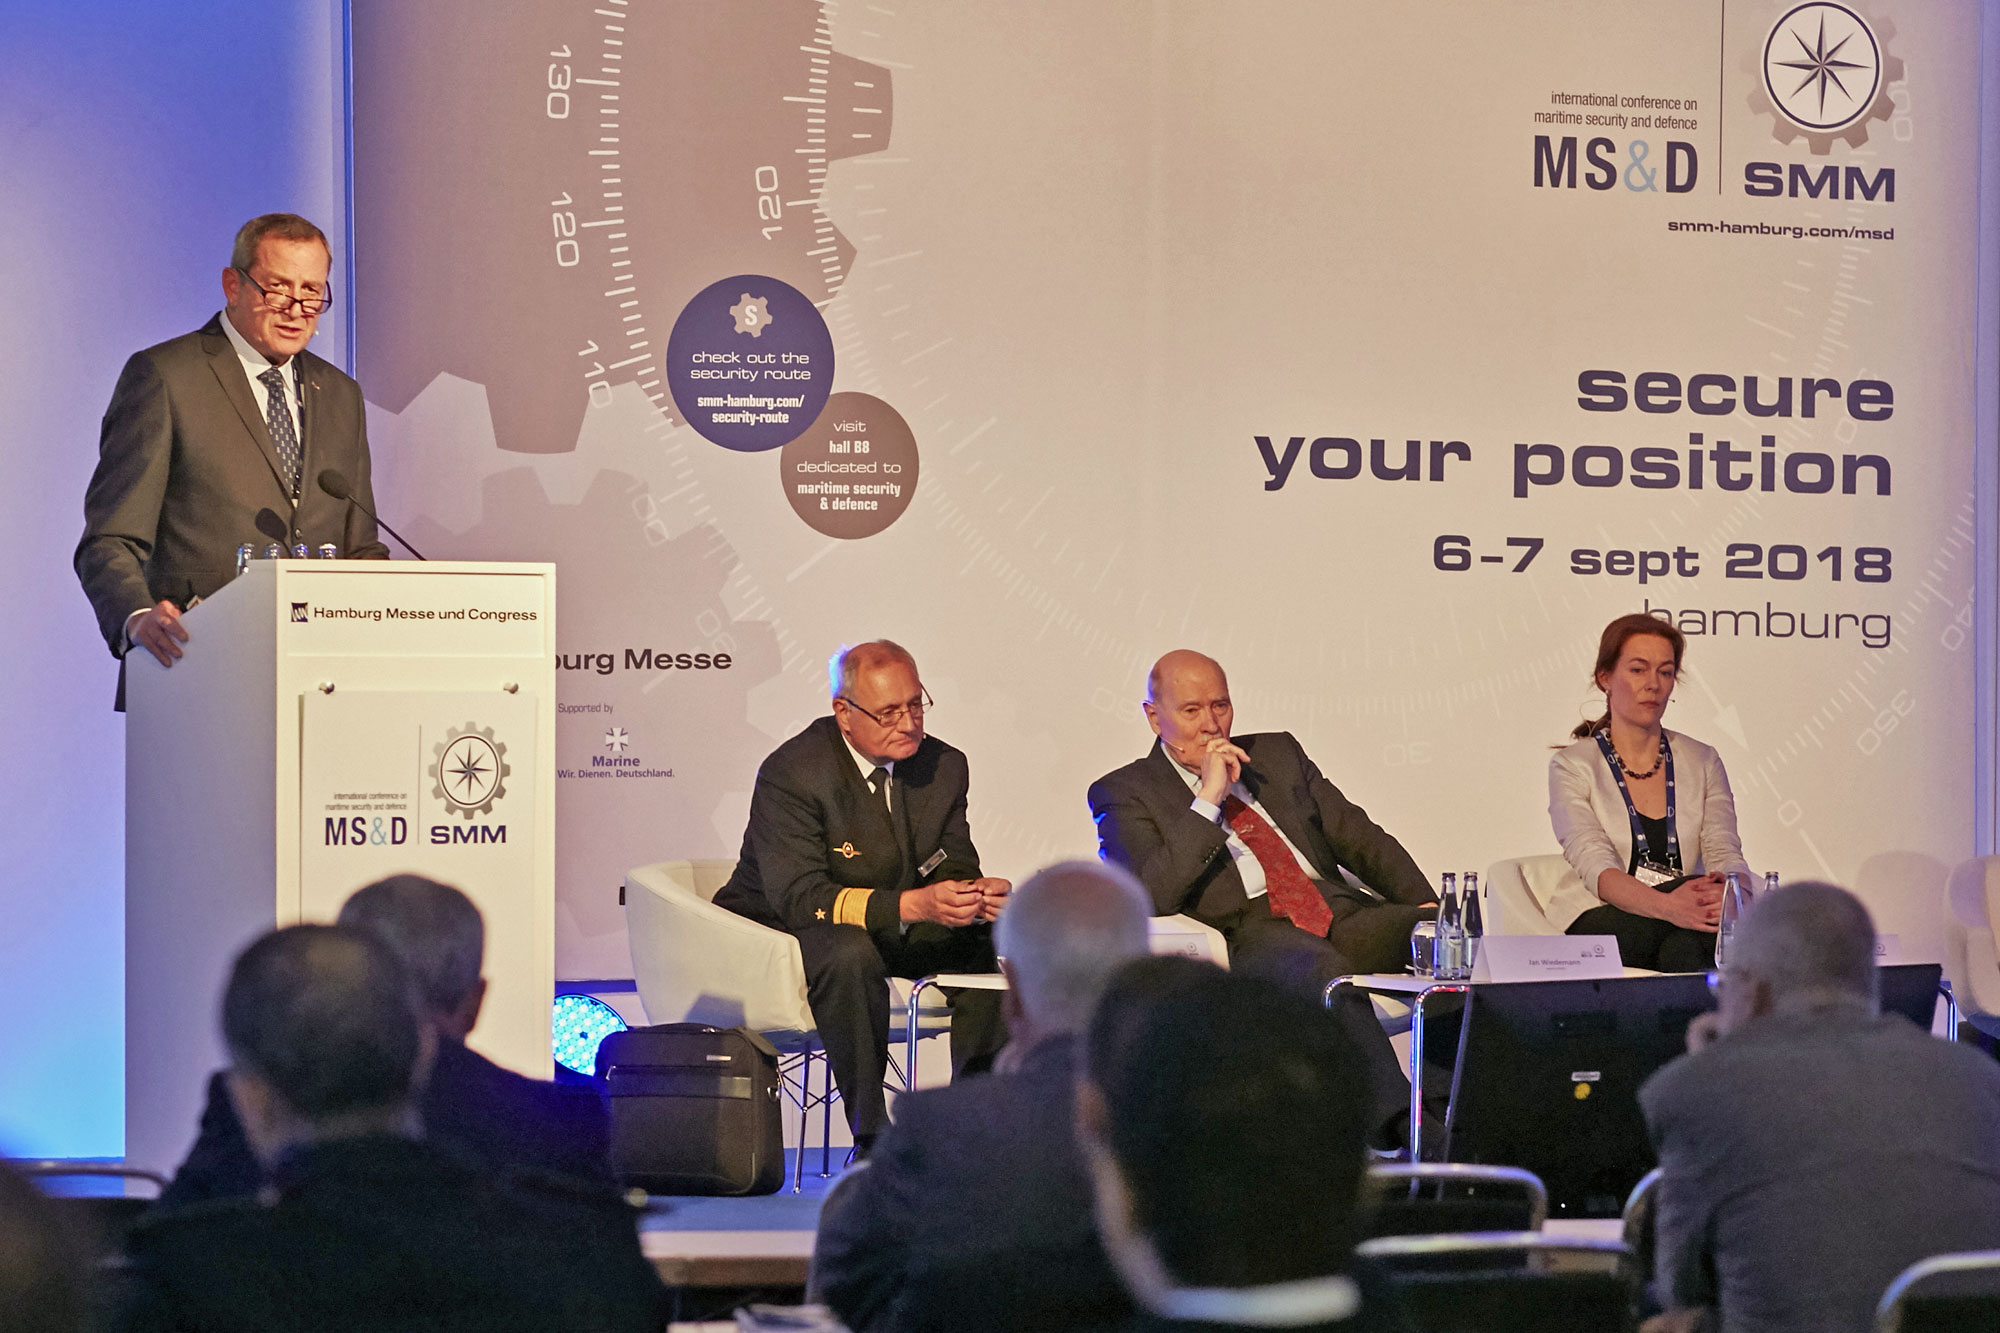 MS&D, the international conference for maritime security and defence